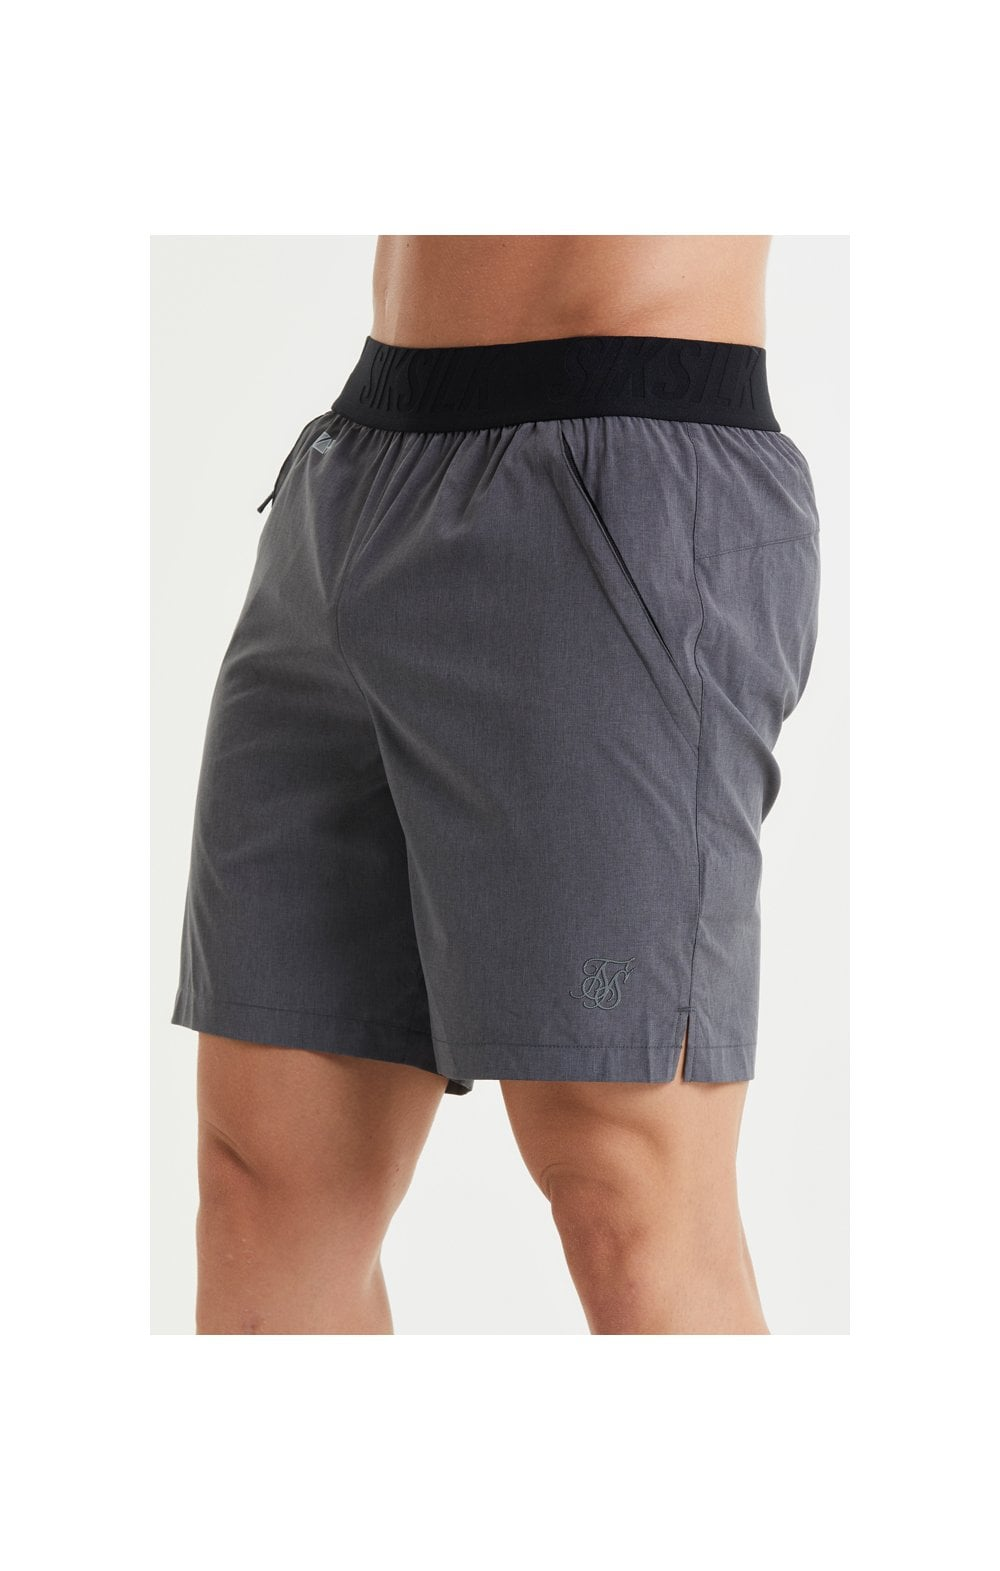 SikSilk Pressure Woven Long Shorts - Charcoal Marl (2)